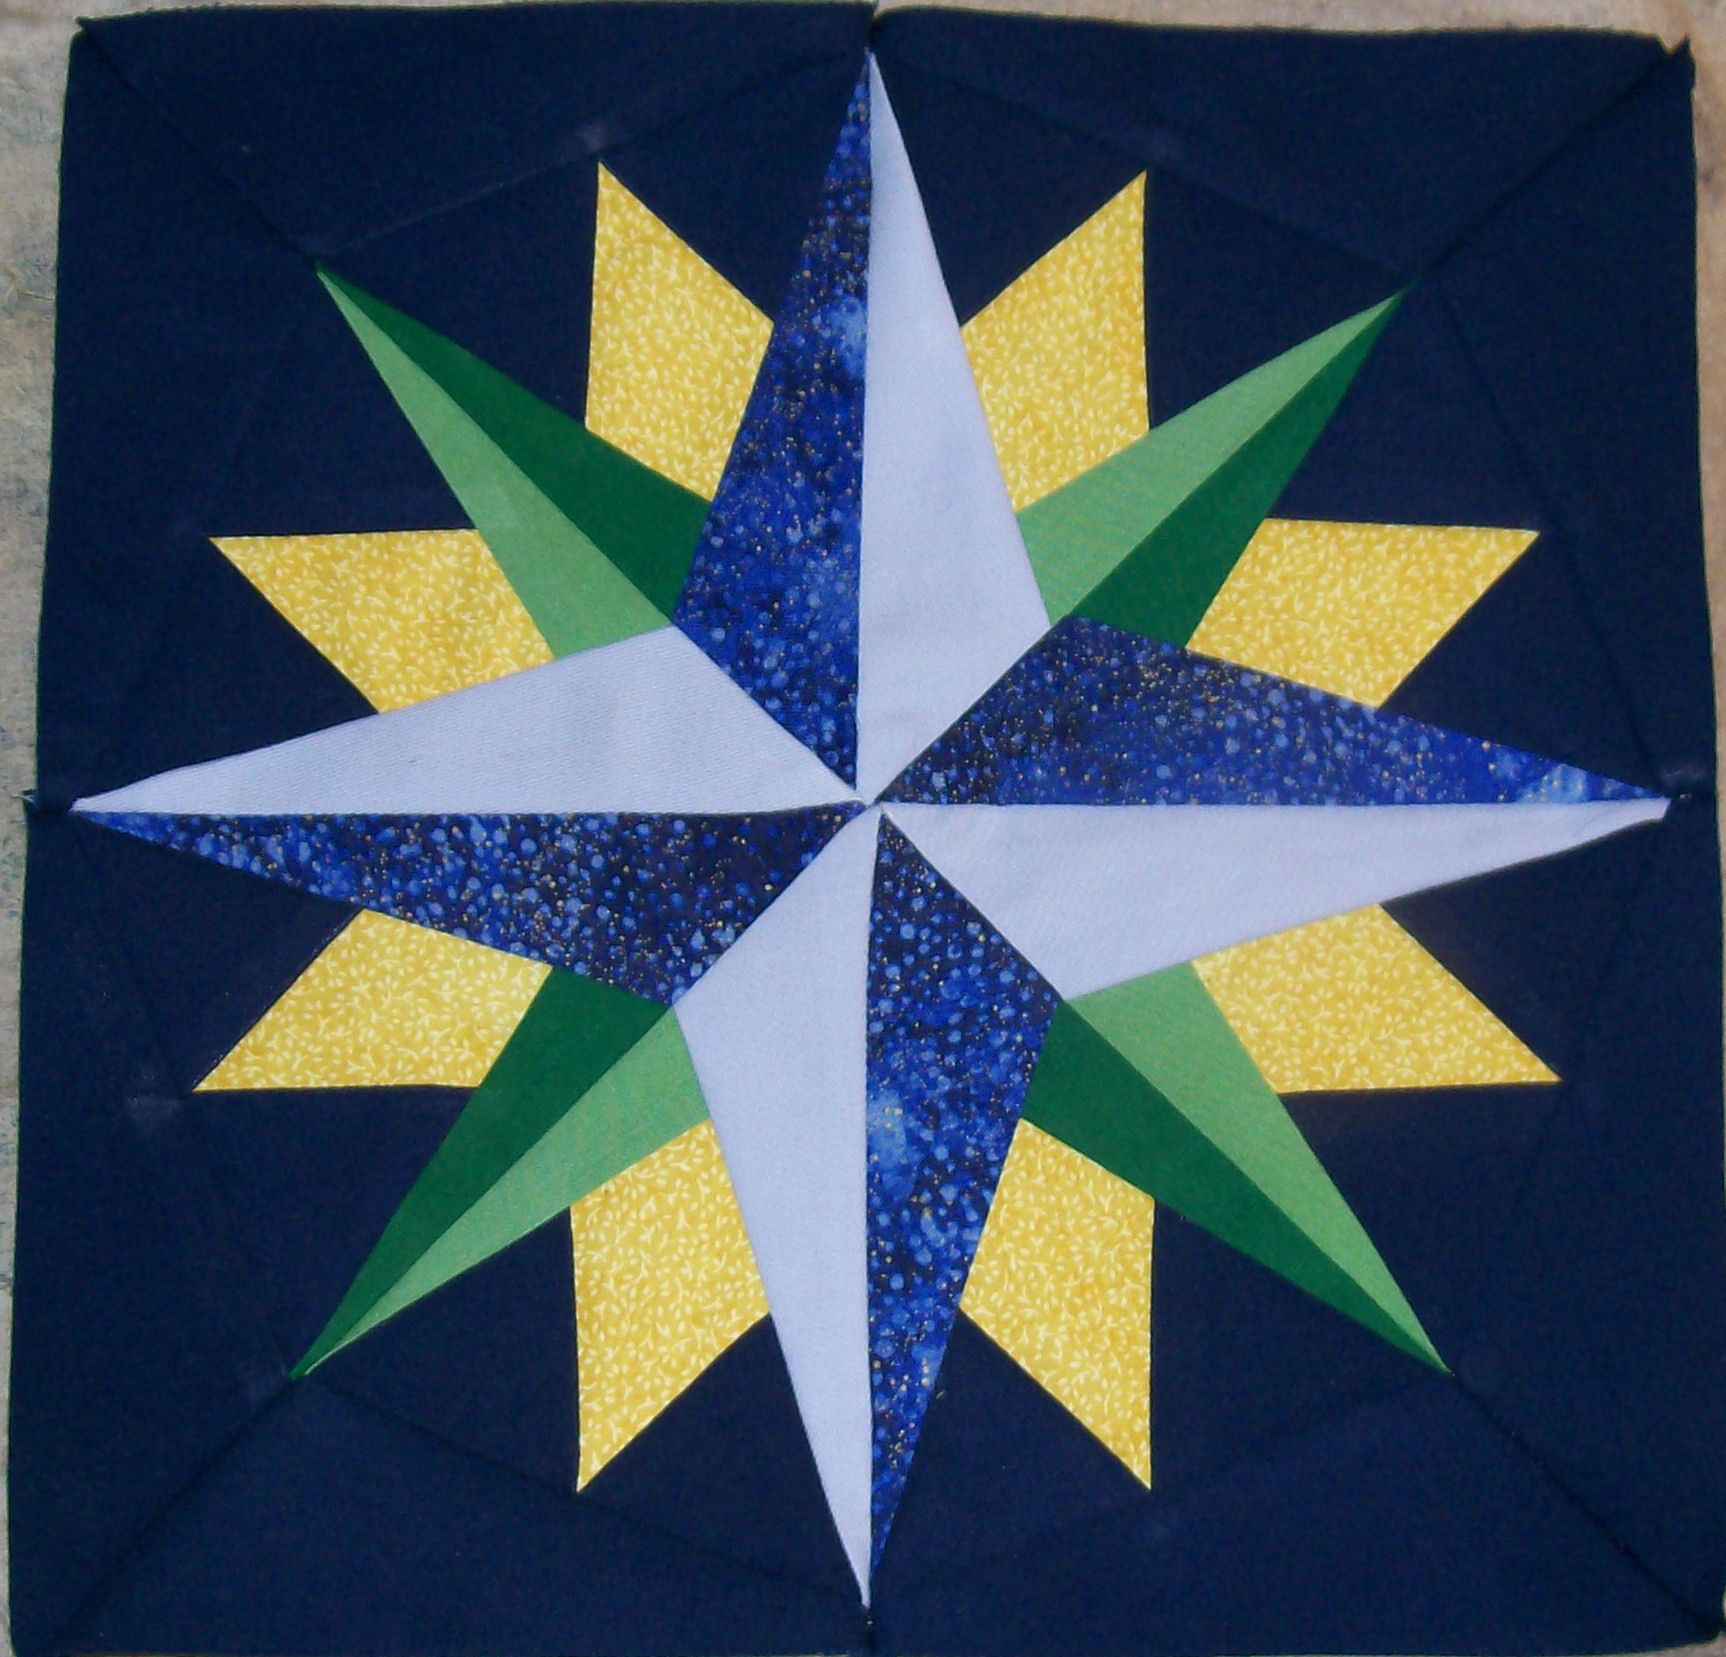 Quilting Patterns Mariner S Compass : Mariner s Compass Quilt Blocks by Becky Crafts from the quiltingboard.com Quilts Pinterest ...